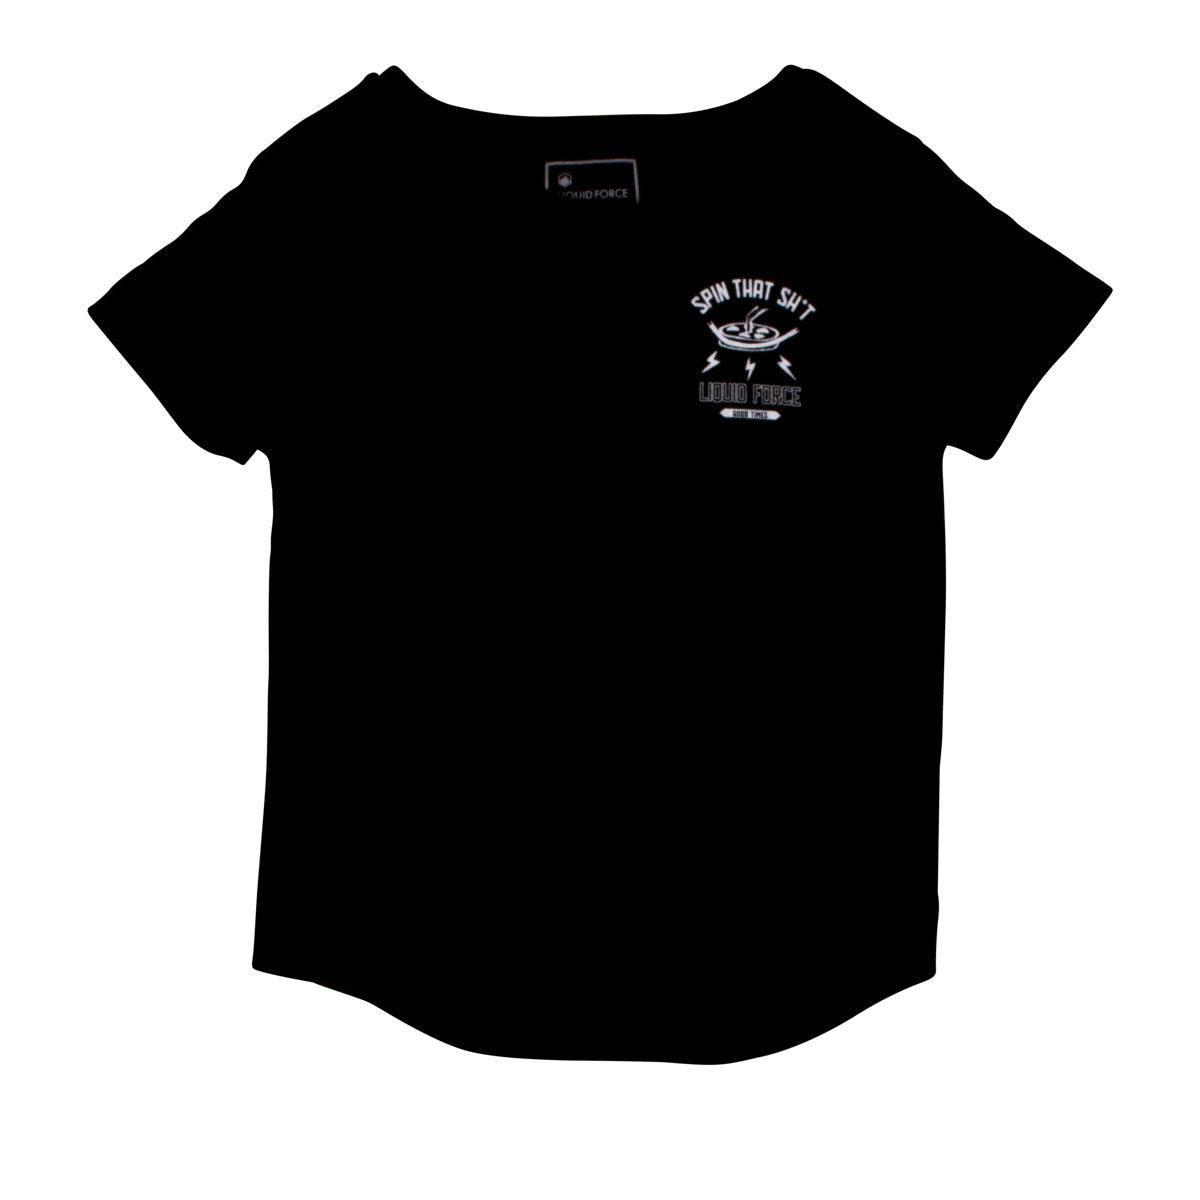 2021 Spinning Women's Black Tee